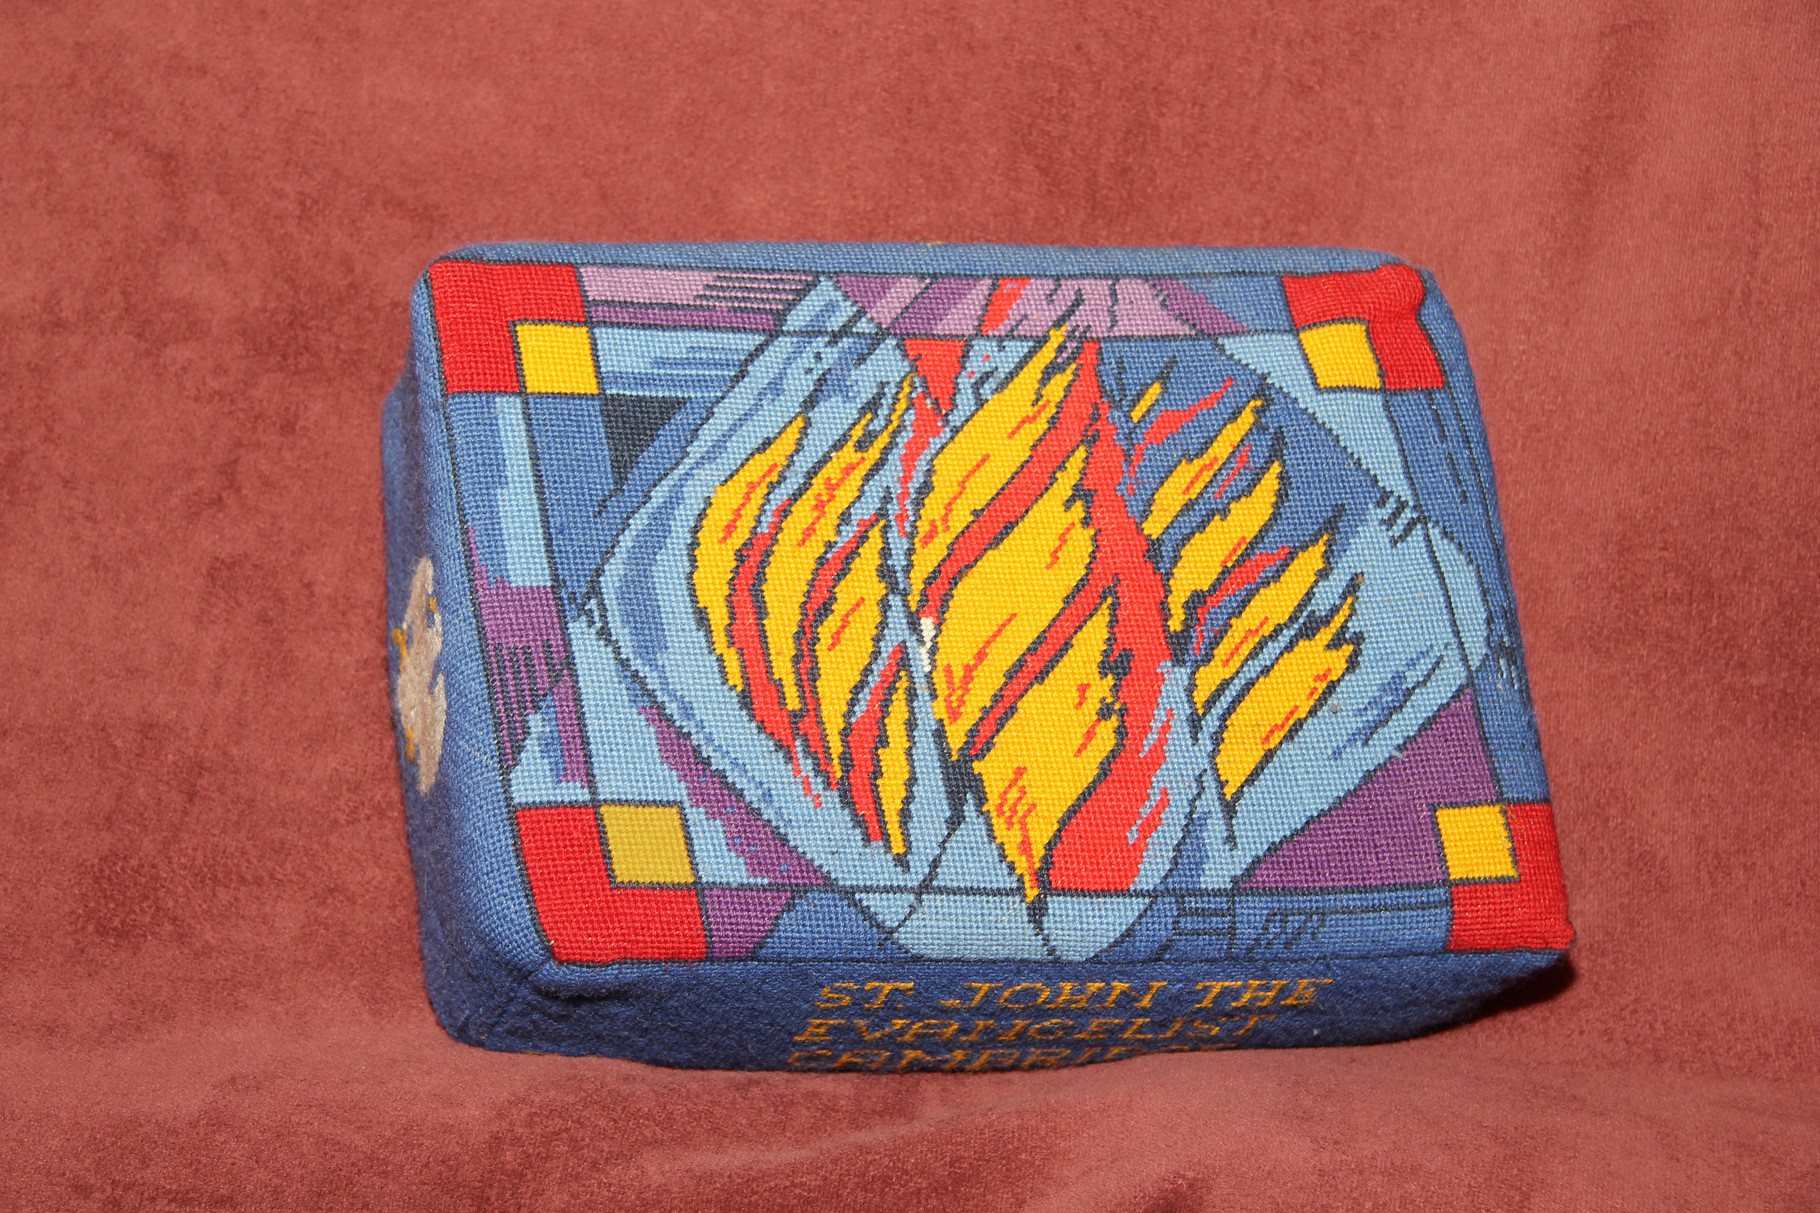 12.   Pentecost Flames – donated by Elizabeth Hubbard and worked by Rosemary Huggins